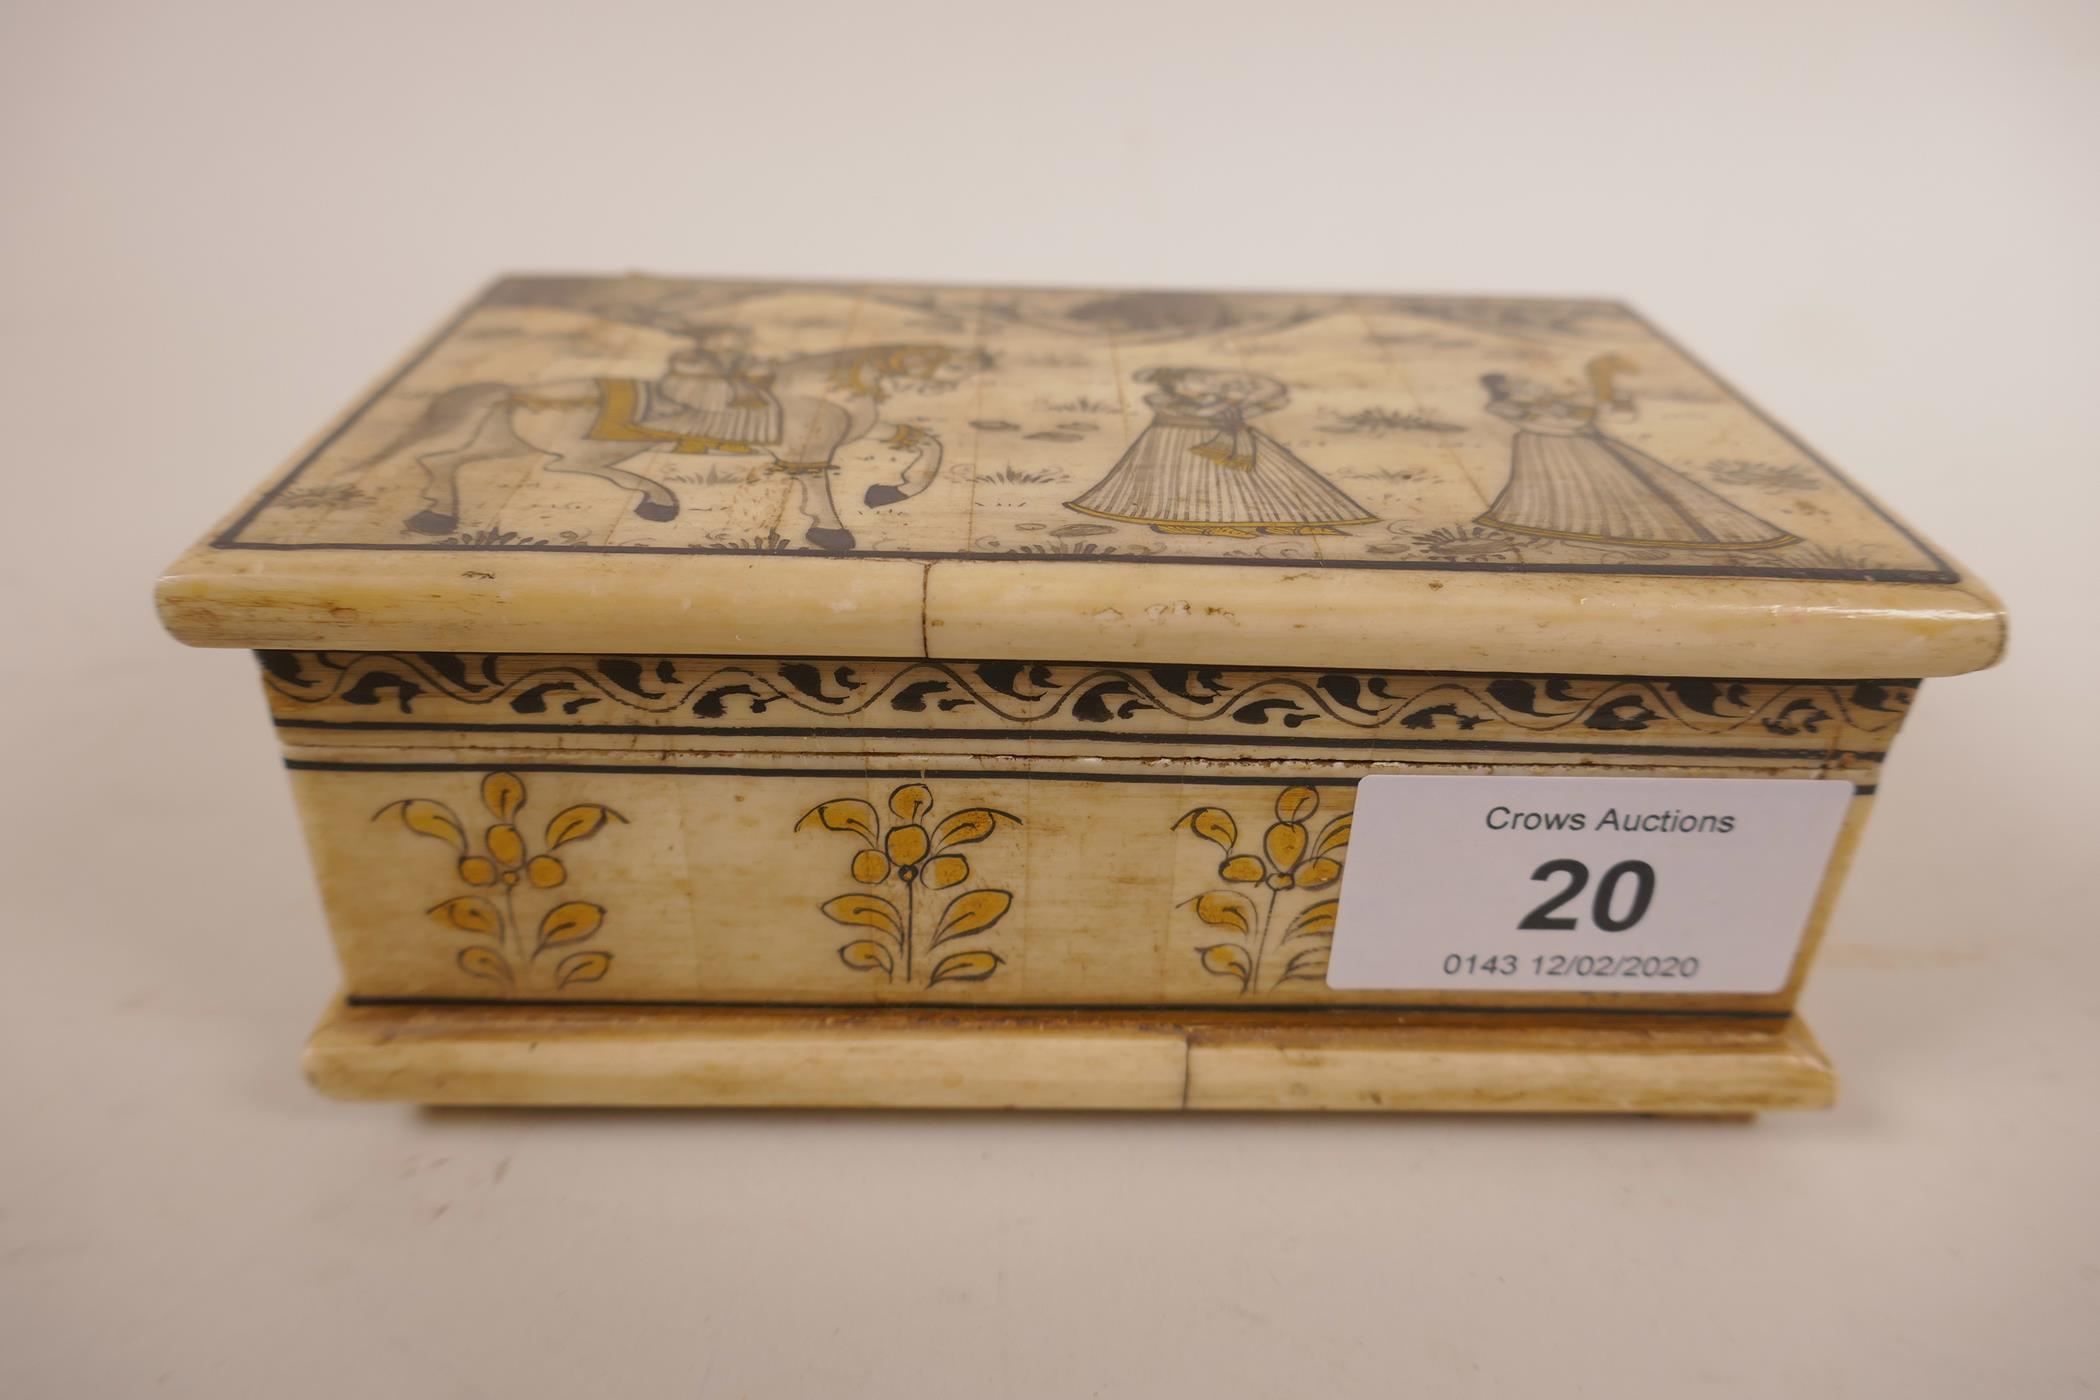 Lot 20 - An Indian bone box and cover, beautifully painted with intricate decoration featuring gold and